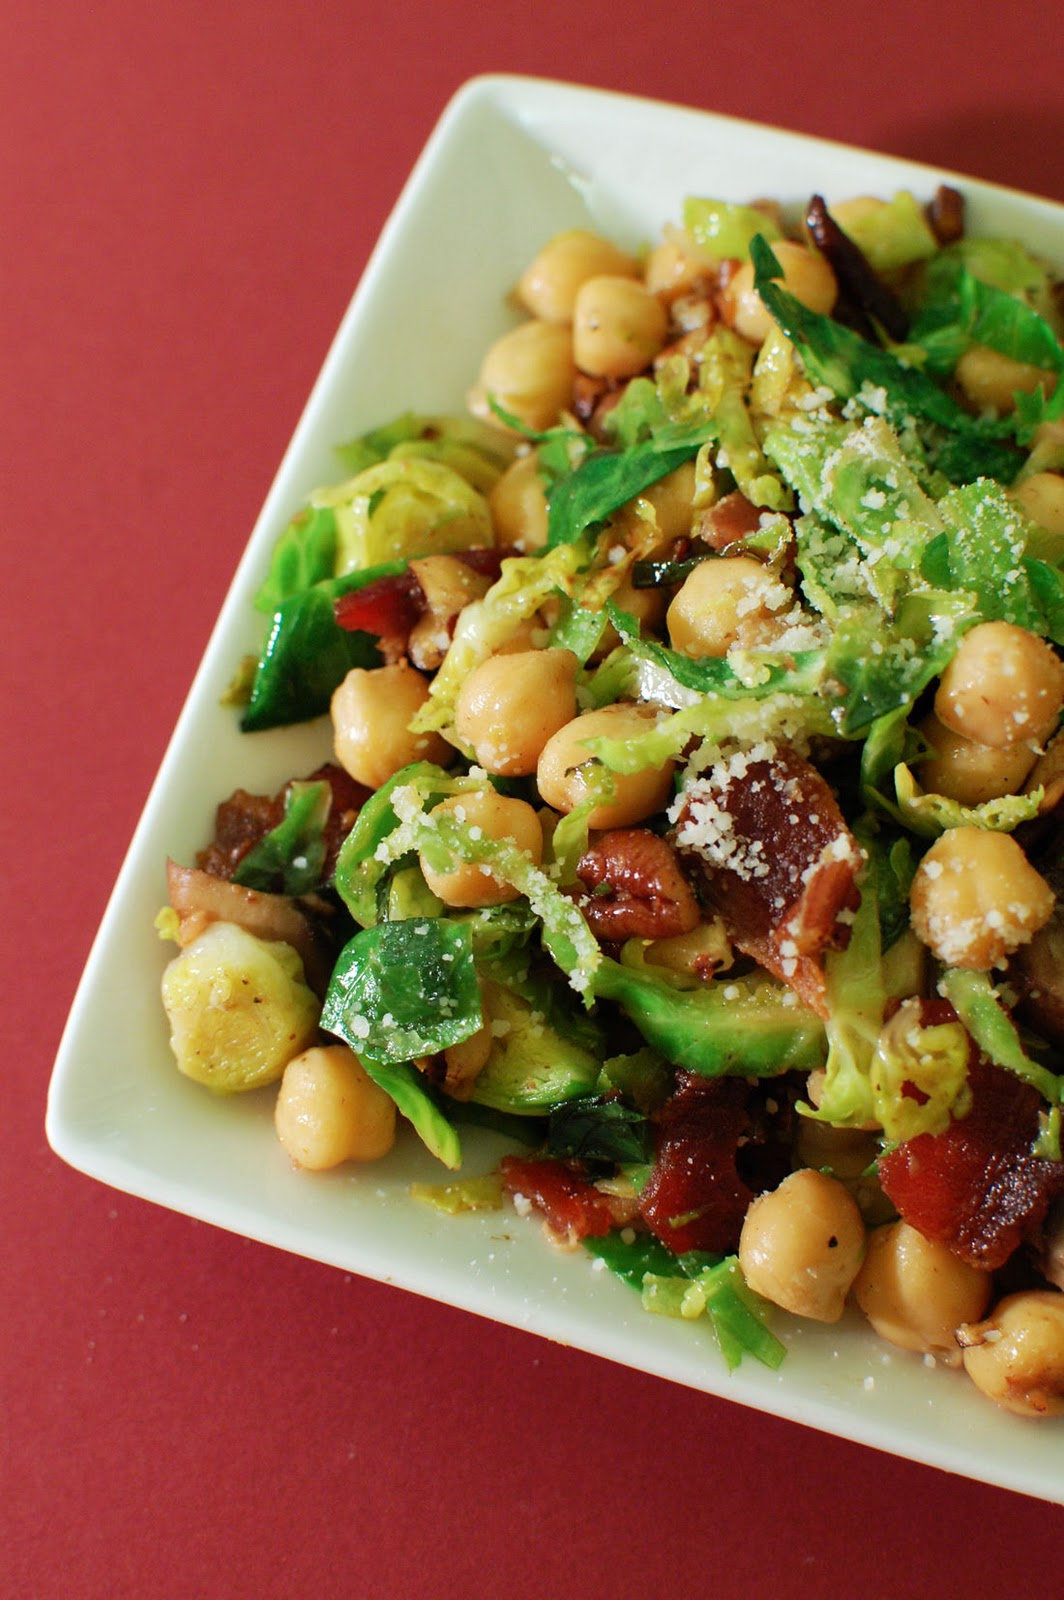 Warm Chickpea, Mushroom, and Brussels Sprouts Salad ...